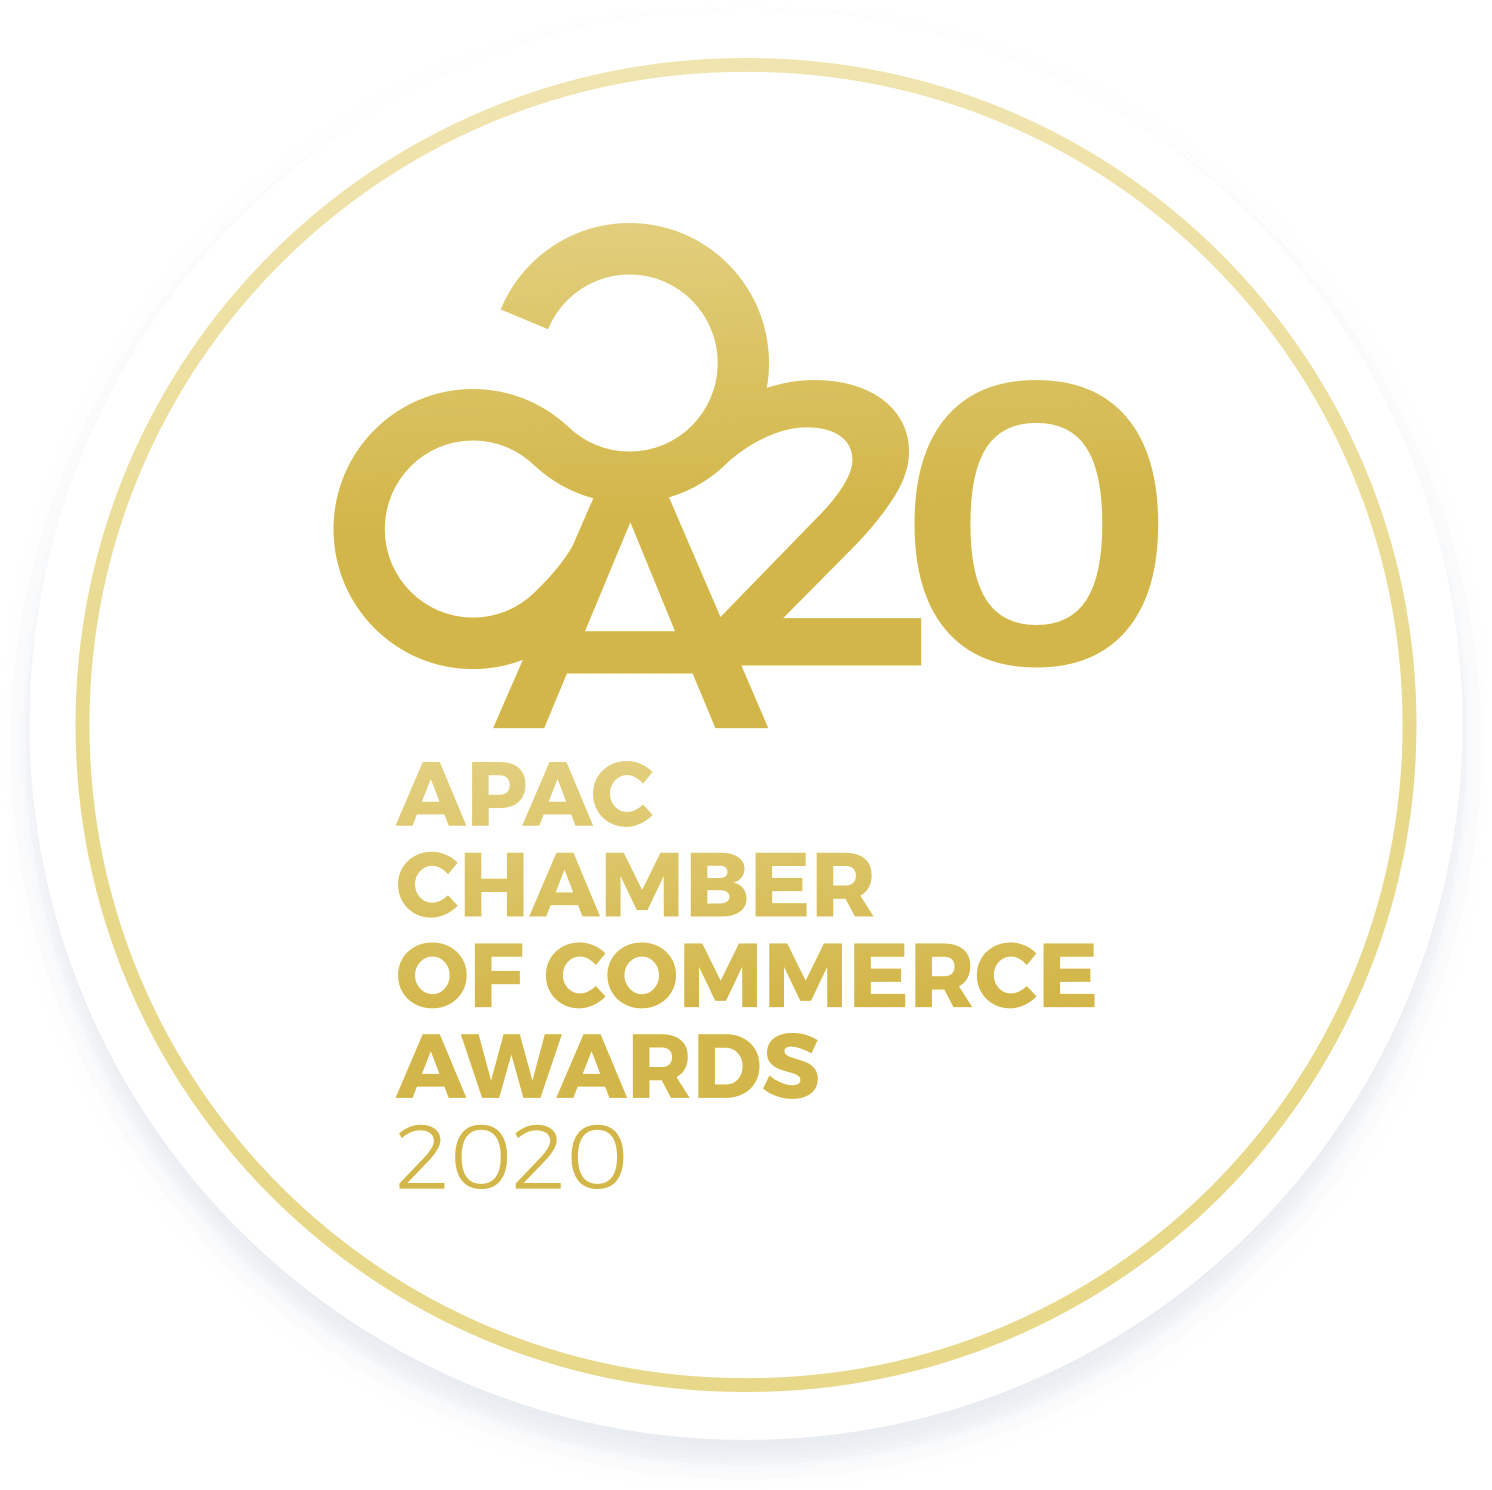 APAC Chamber of Commerce Awards 2020